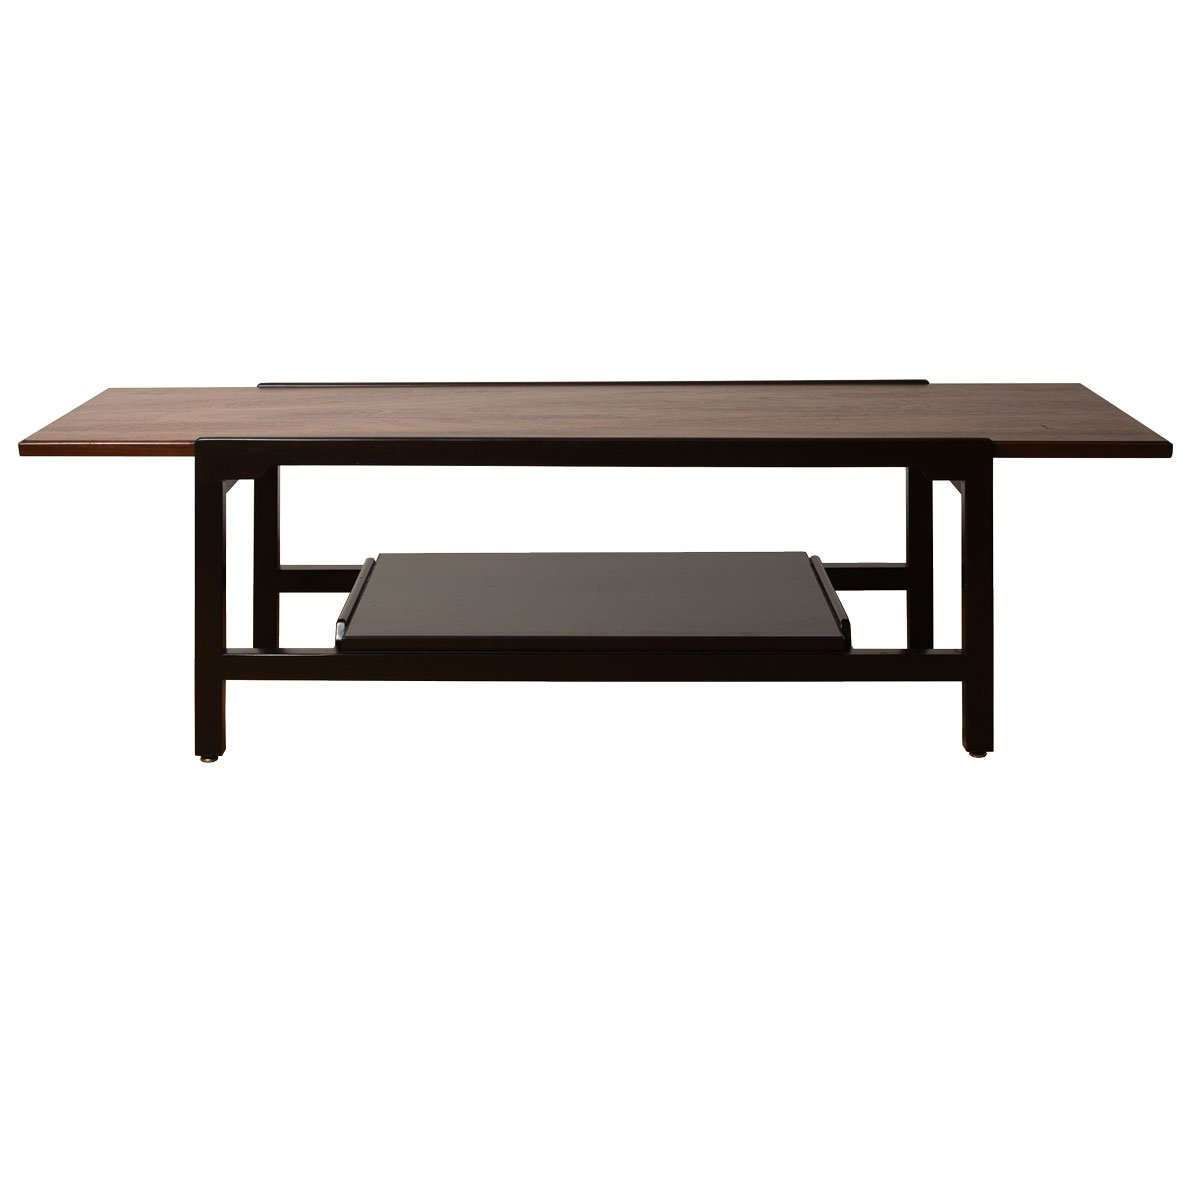 Dunbar Walnut & Black Lacquer Coffee Table w/ Shelf